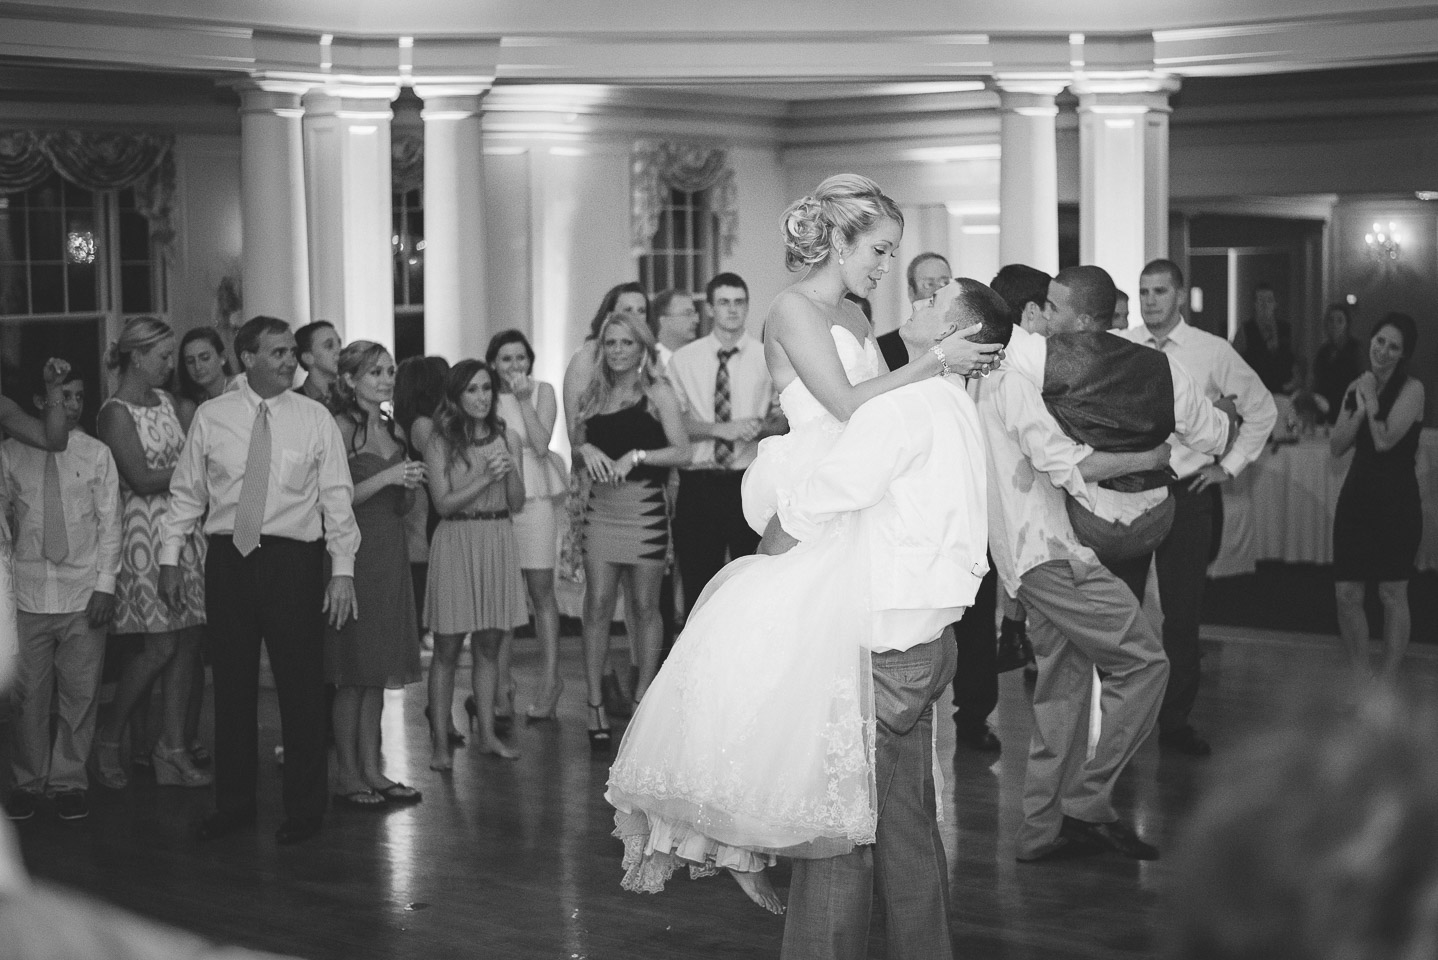 NH Wedding Photography: bride and groom last dance